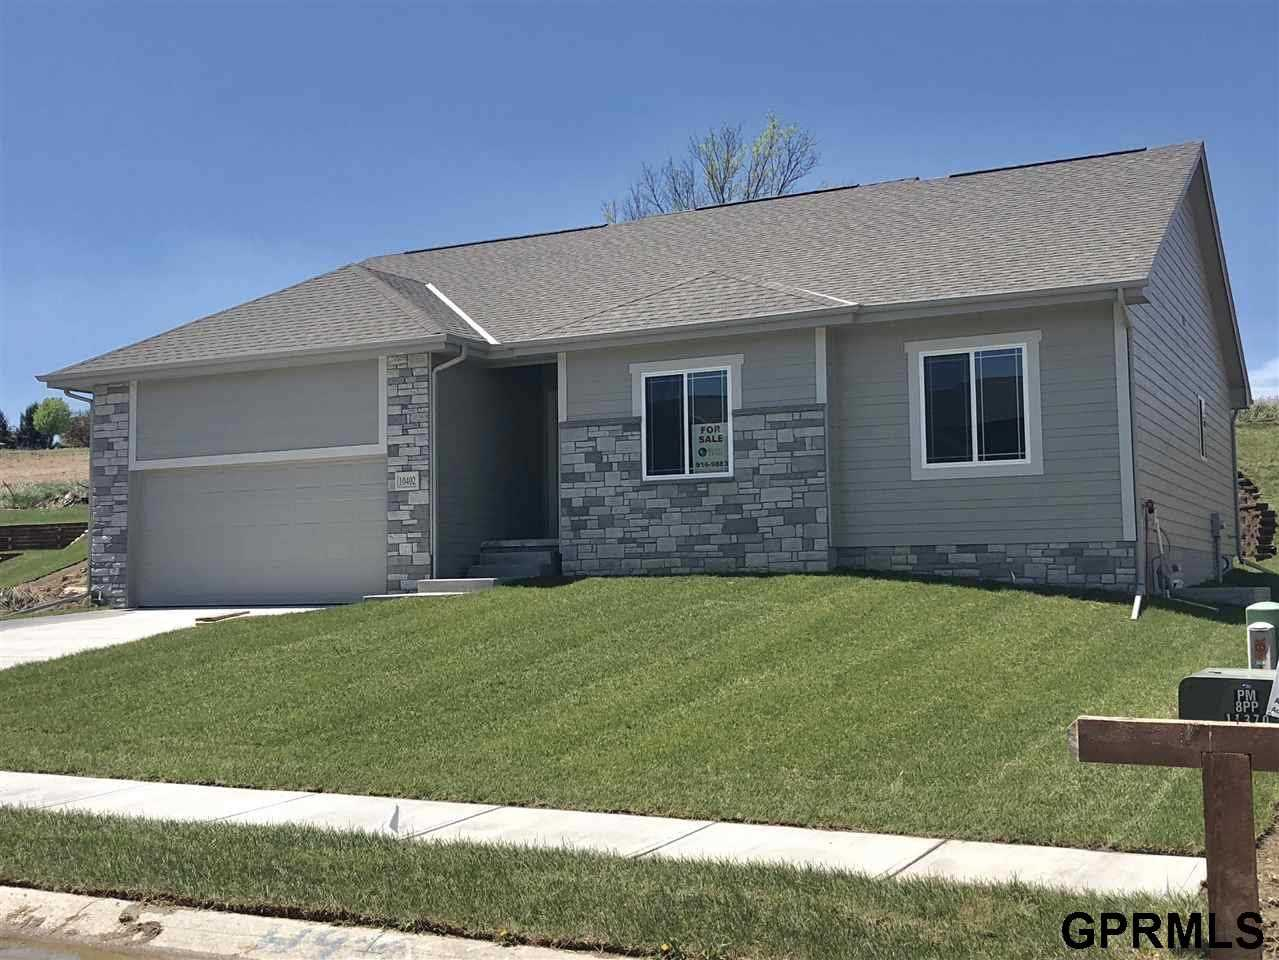 10402 N 152 Bennington, NE 68007 | MLS 21722412 Photo 1